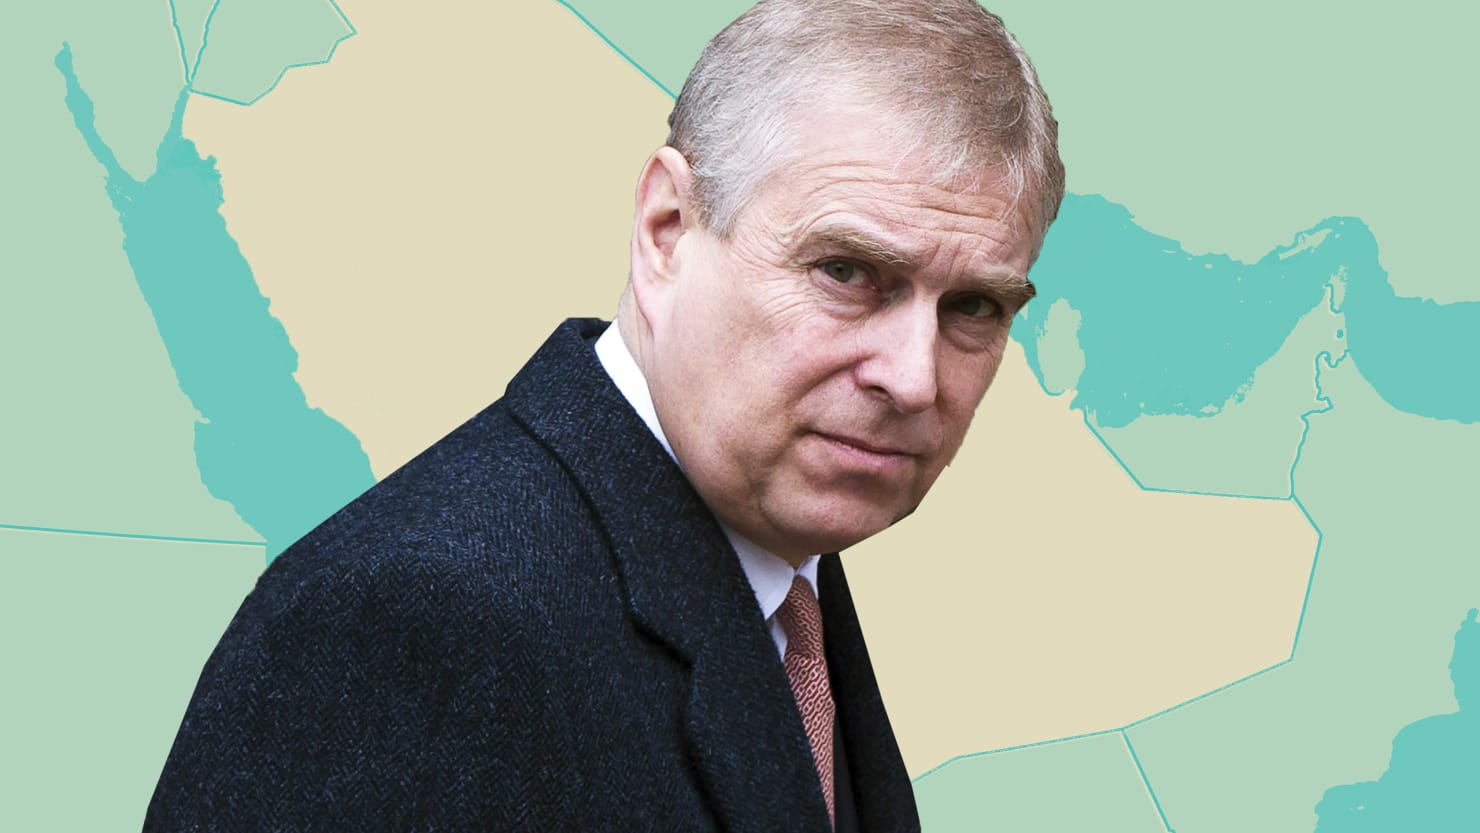 Prince Andrew Picks The Worst Moment To Cozy Up To Saudi Arabia